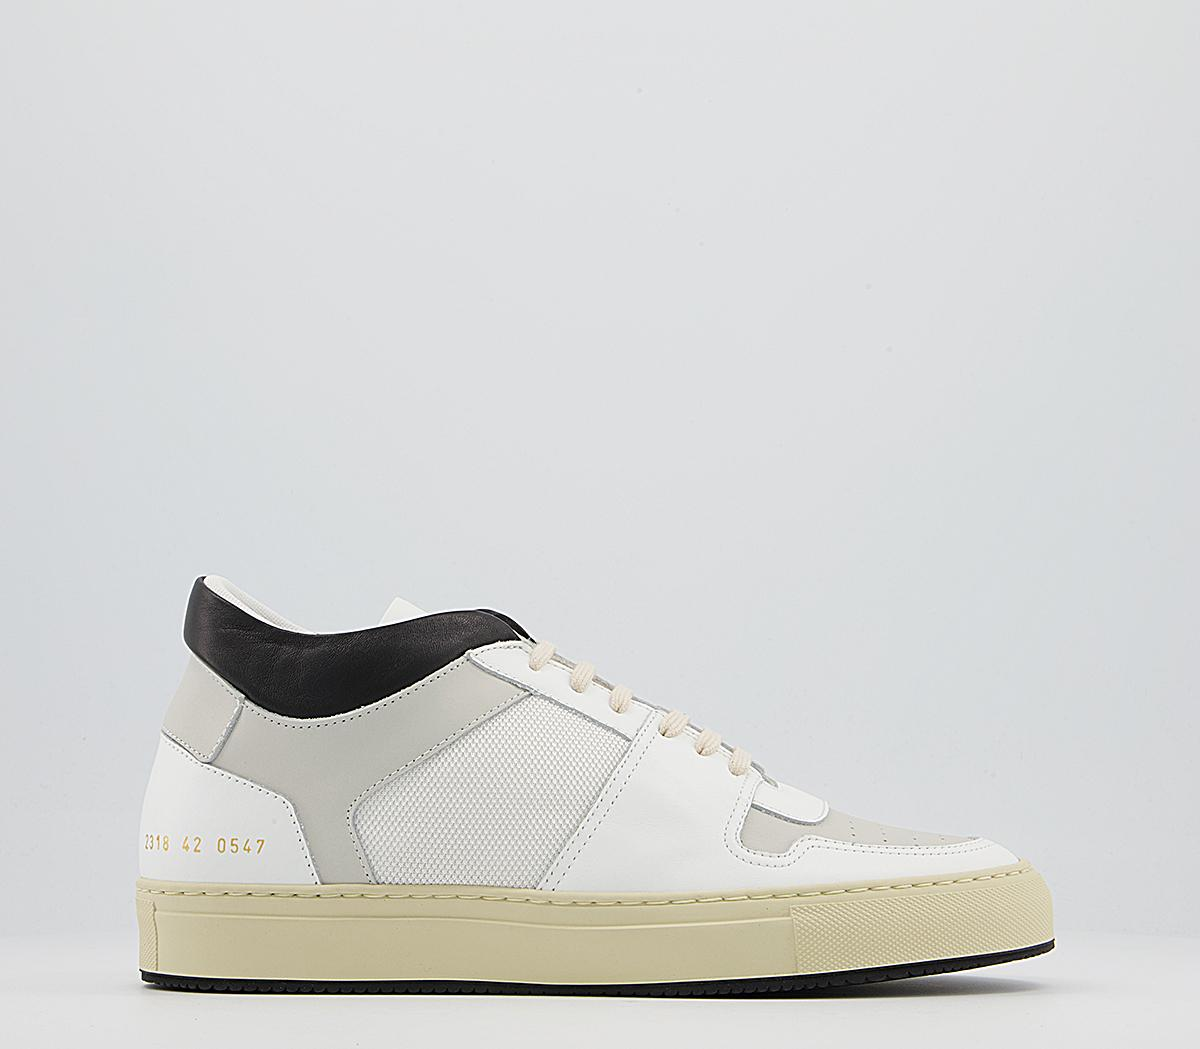 Bball Low Decades Trainers